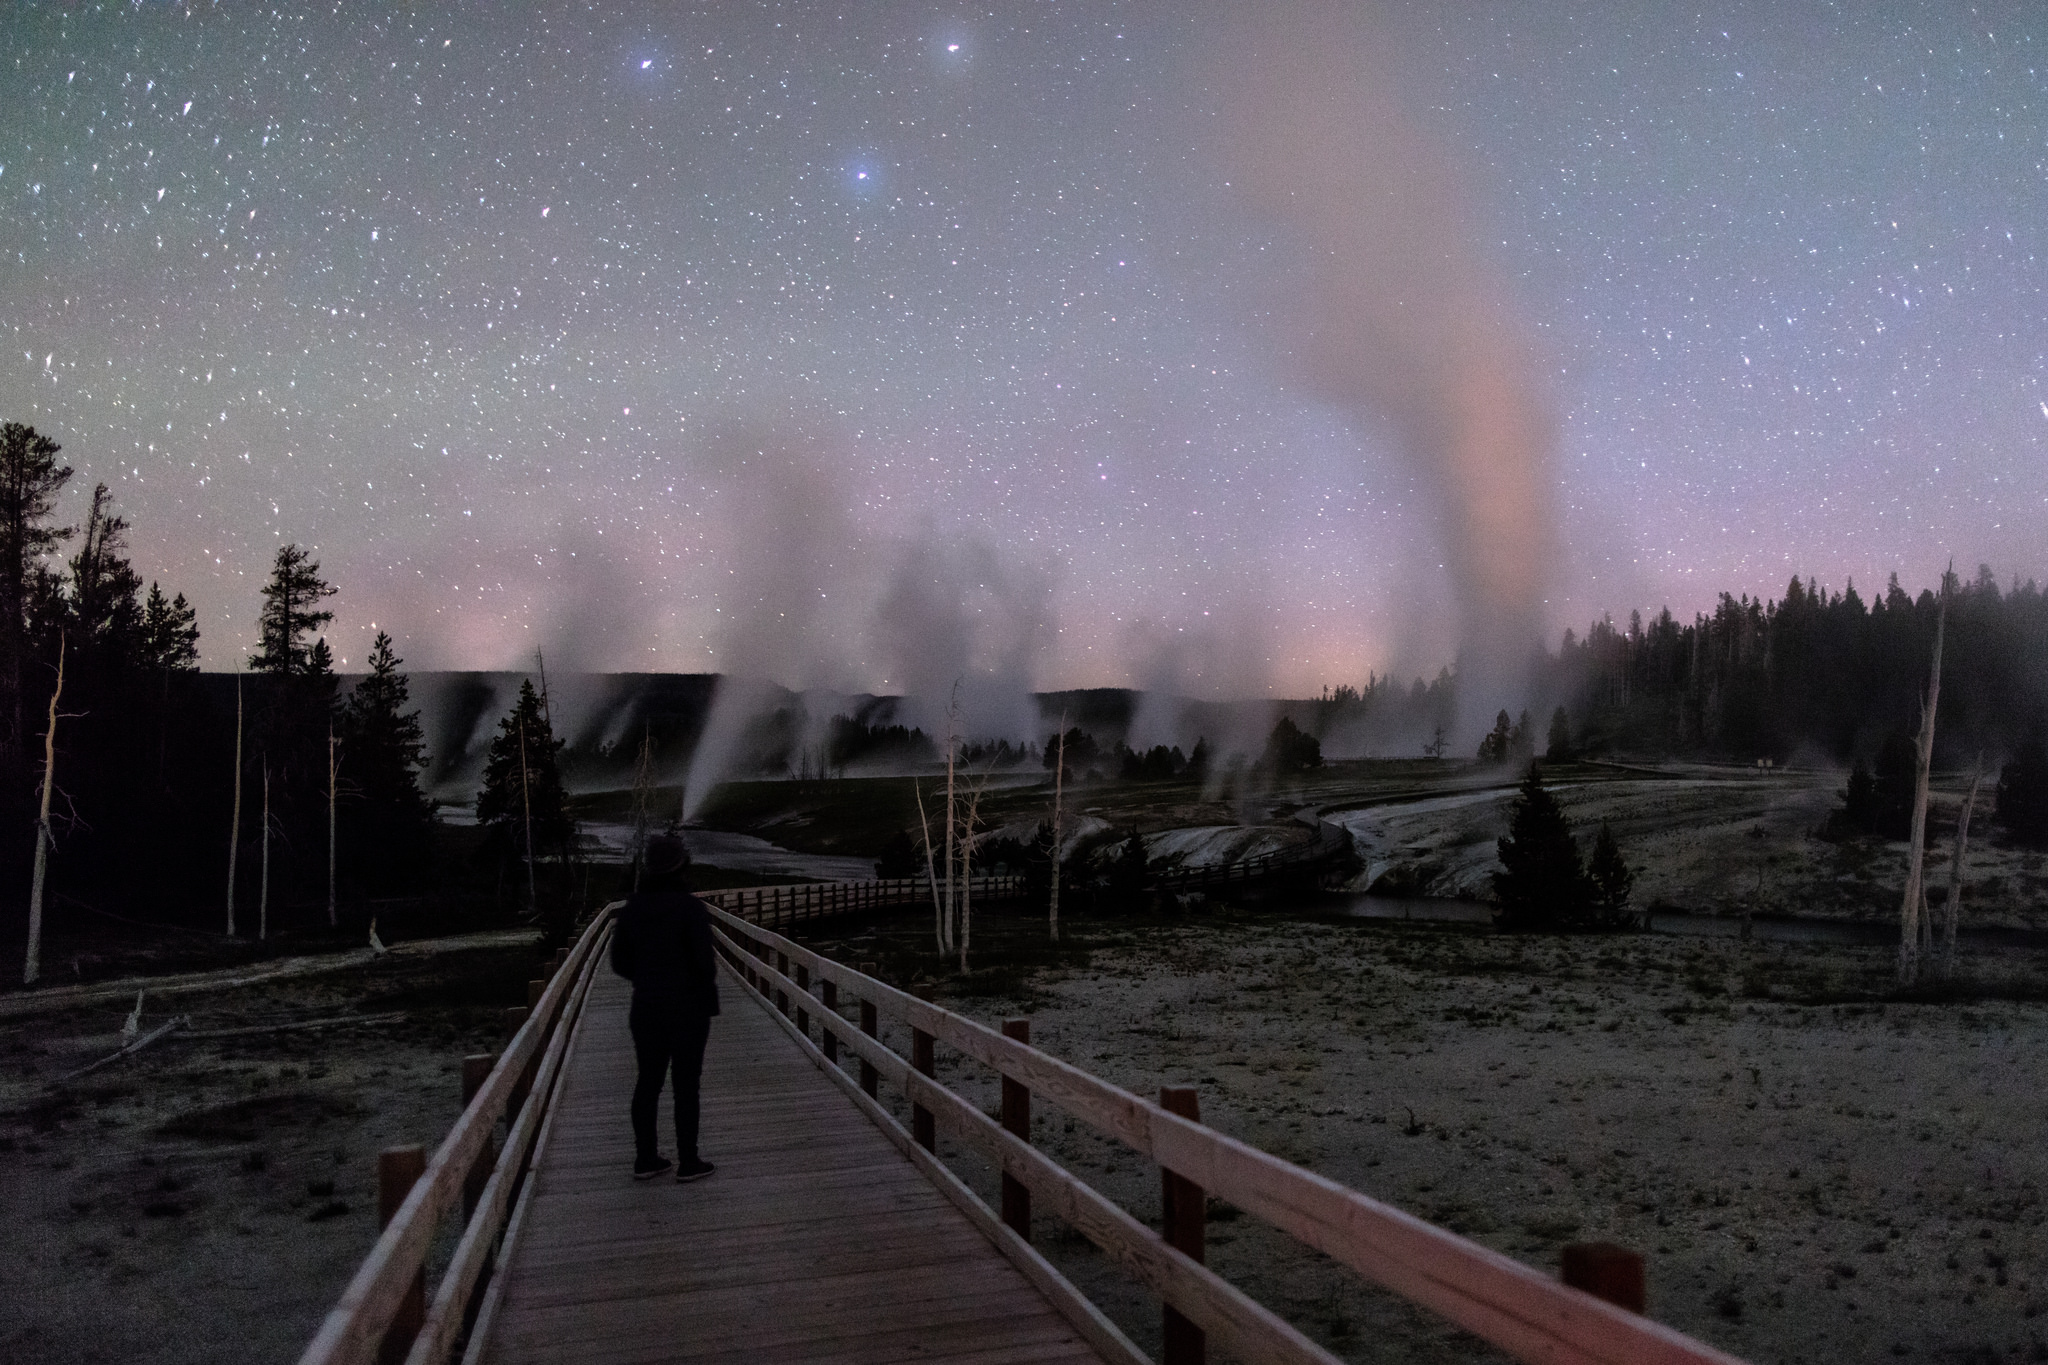 Exploring the boardwalks at night carrying bear spray; photo by Jacob W. Frank